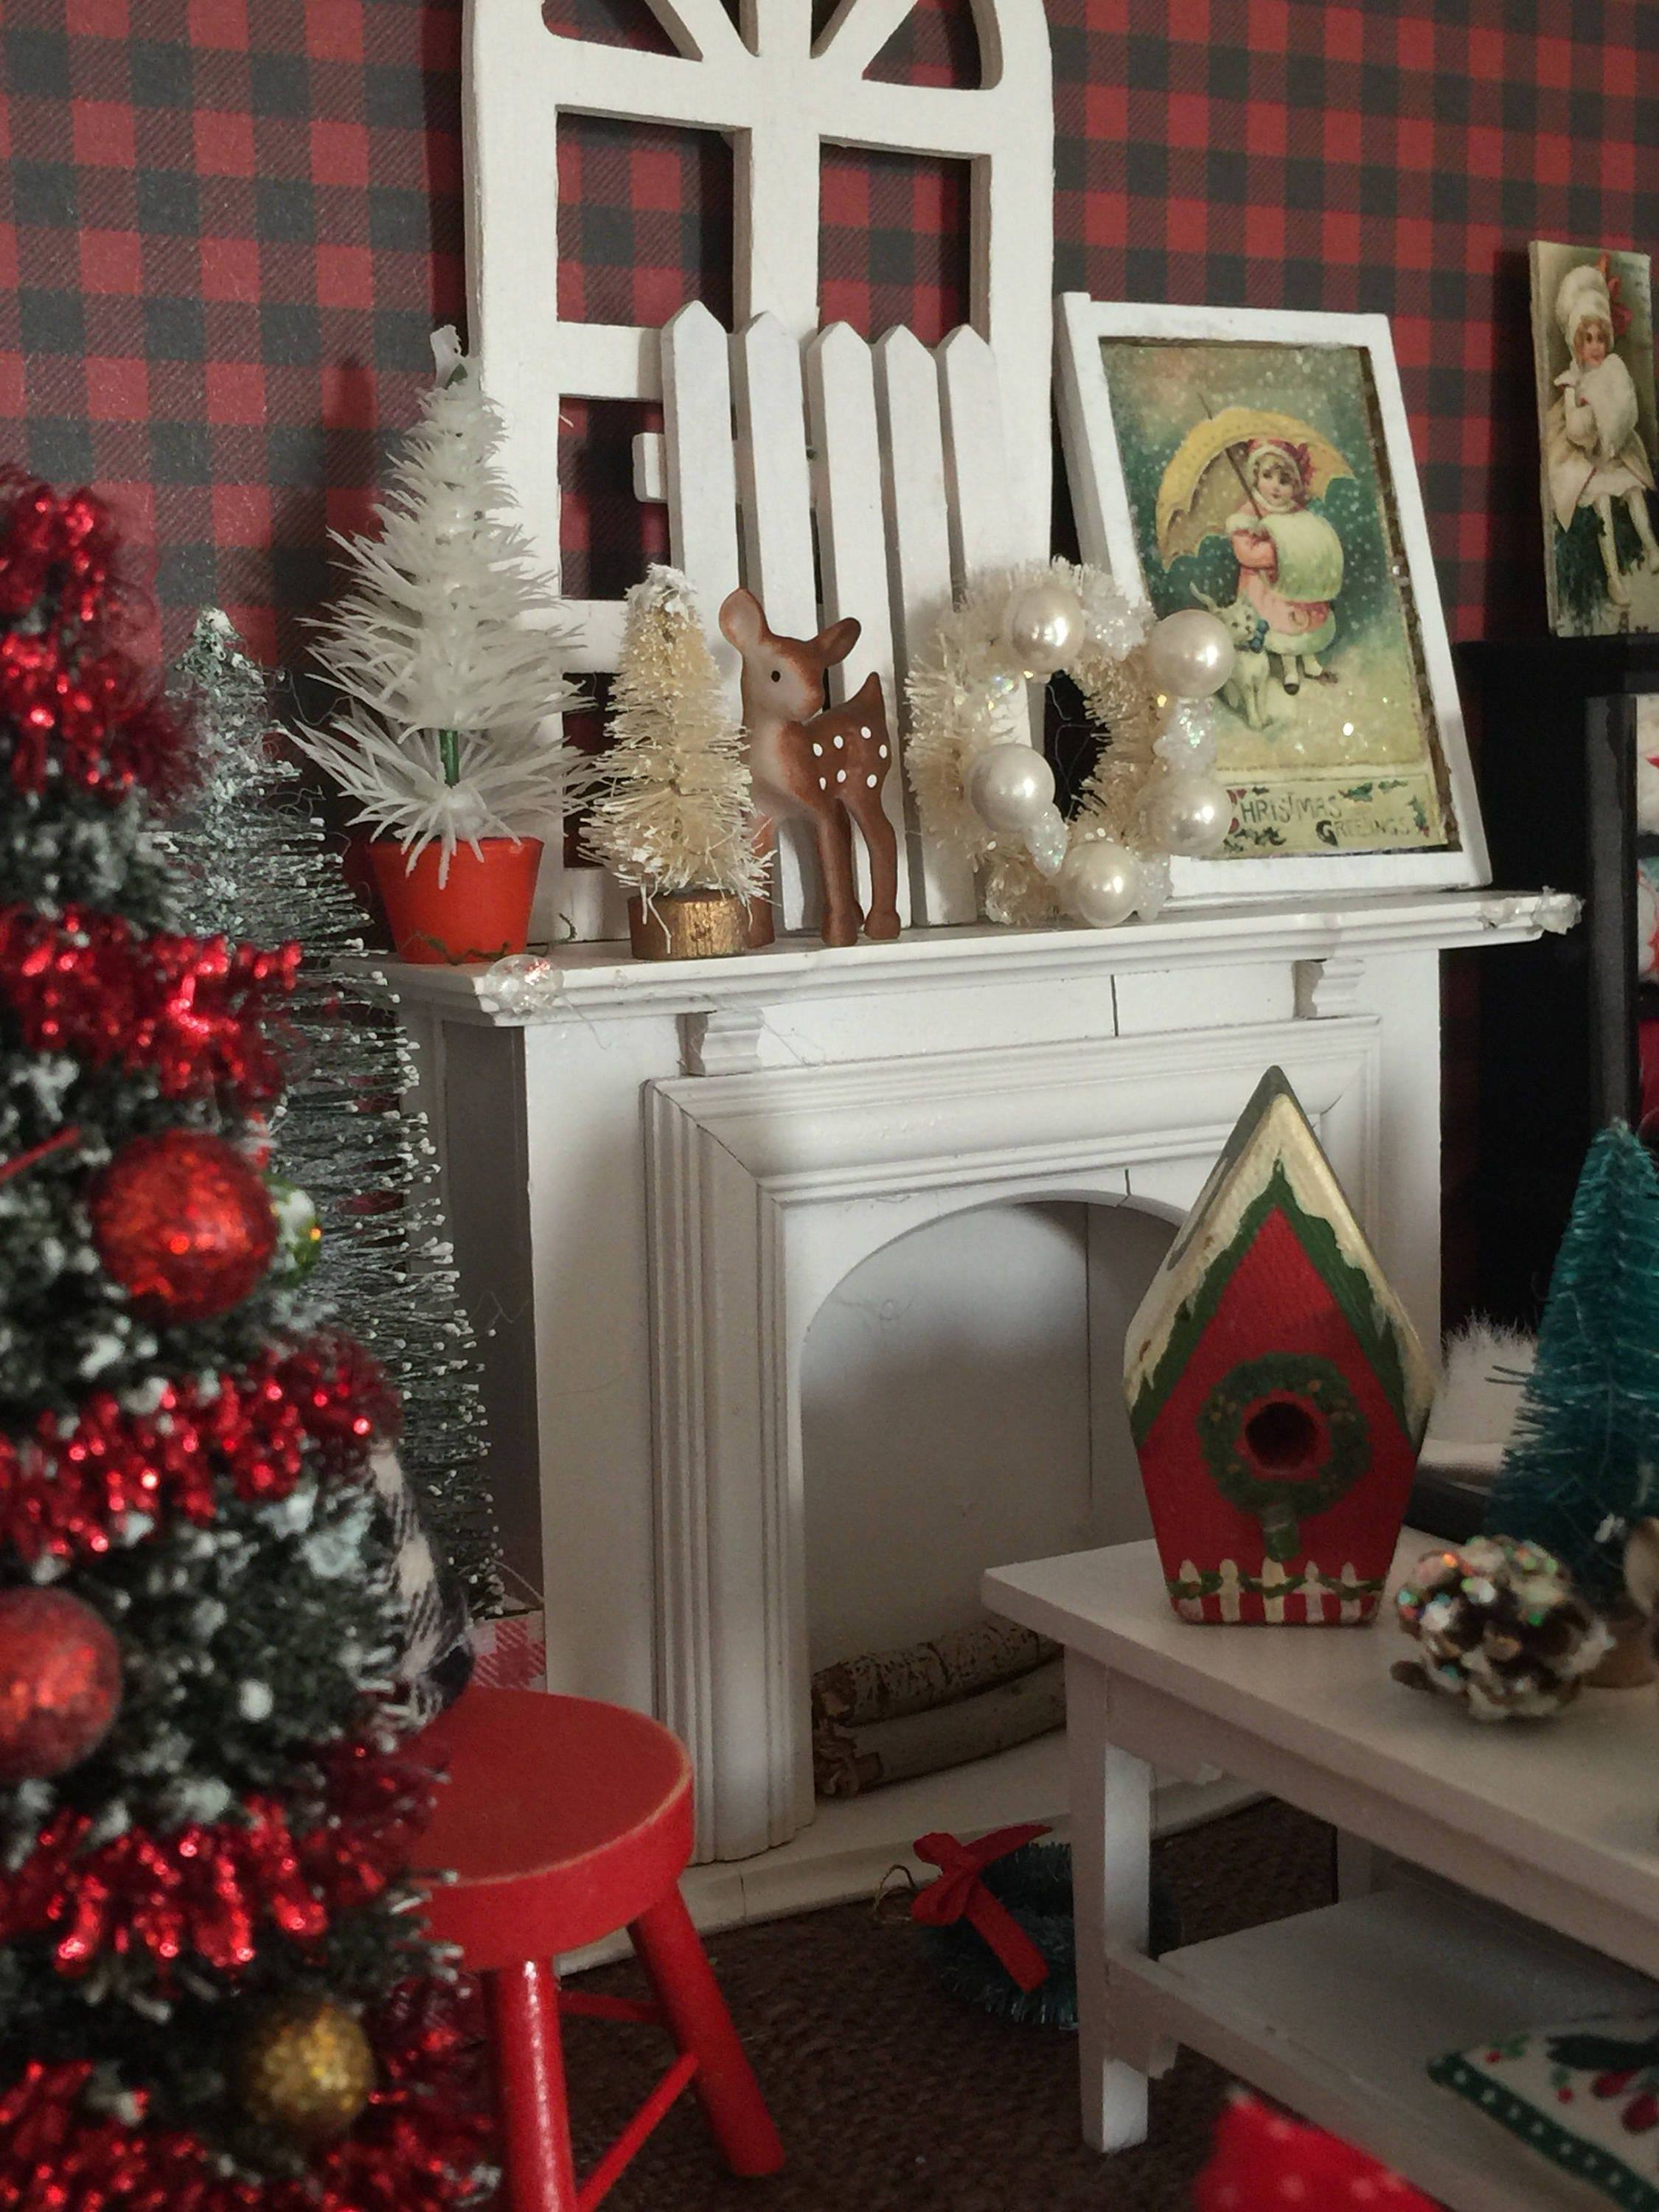 miniature white fireplace christmas accessories 1 12 scale dollhouse